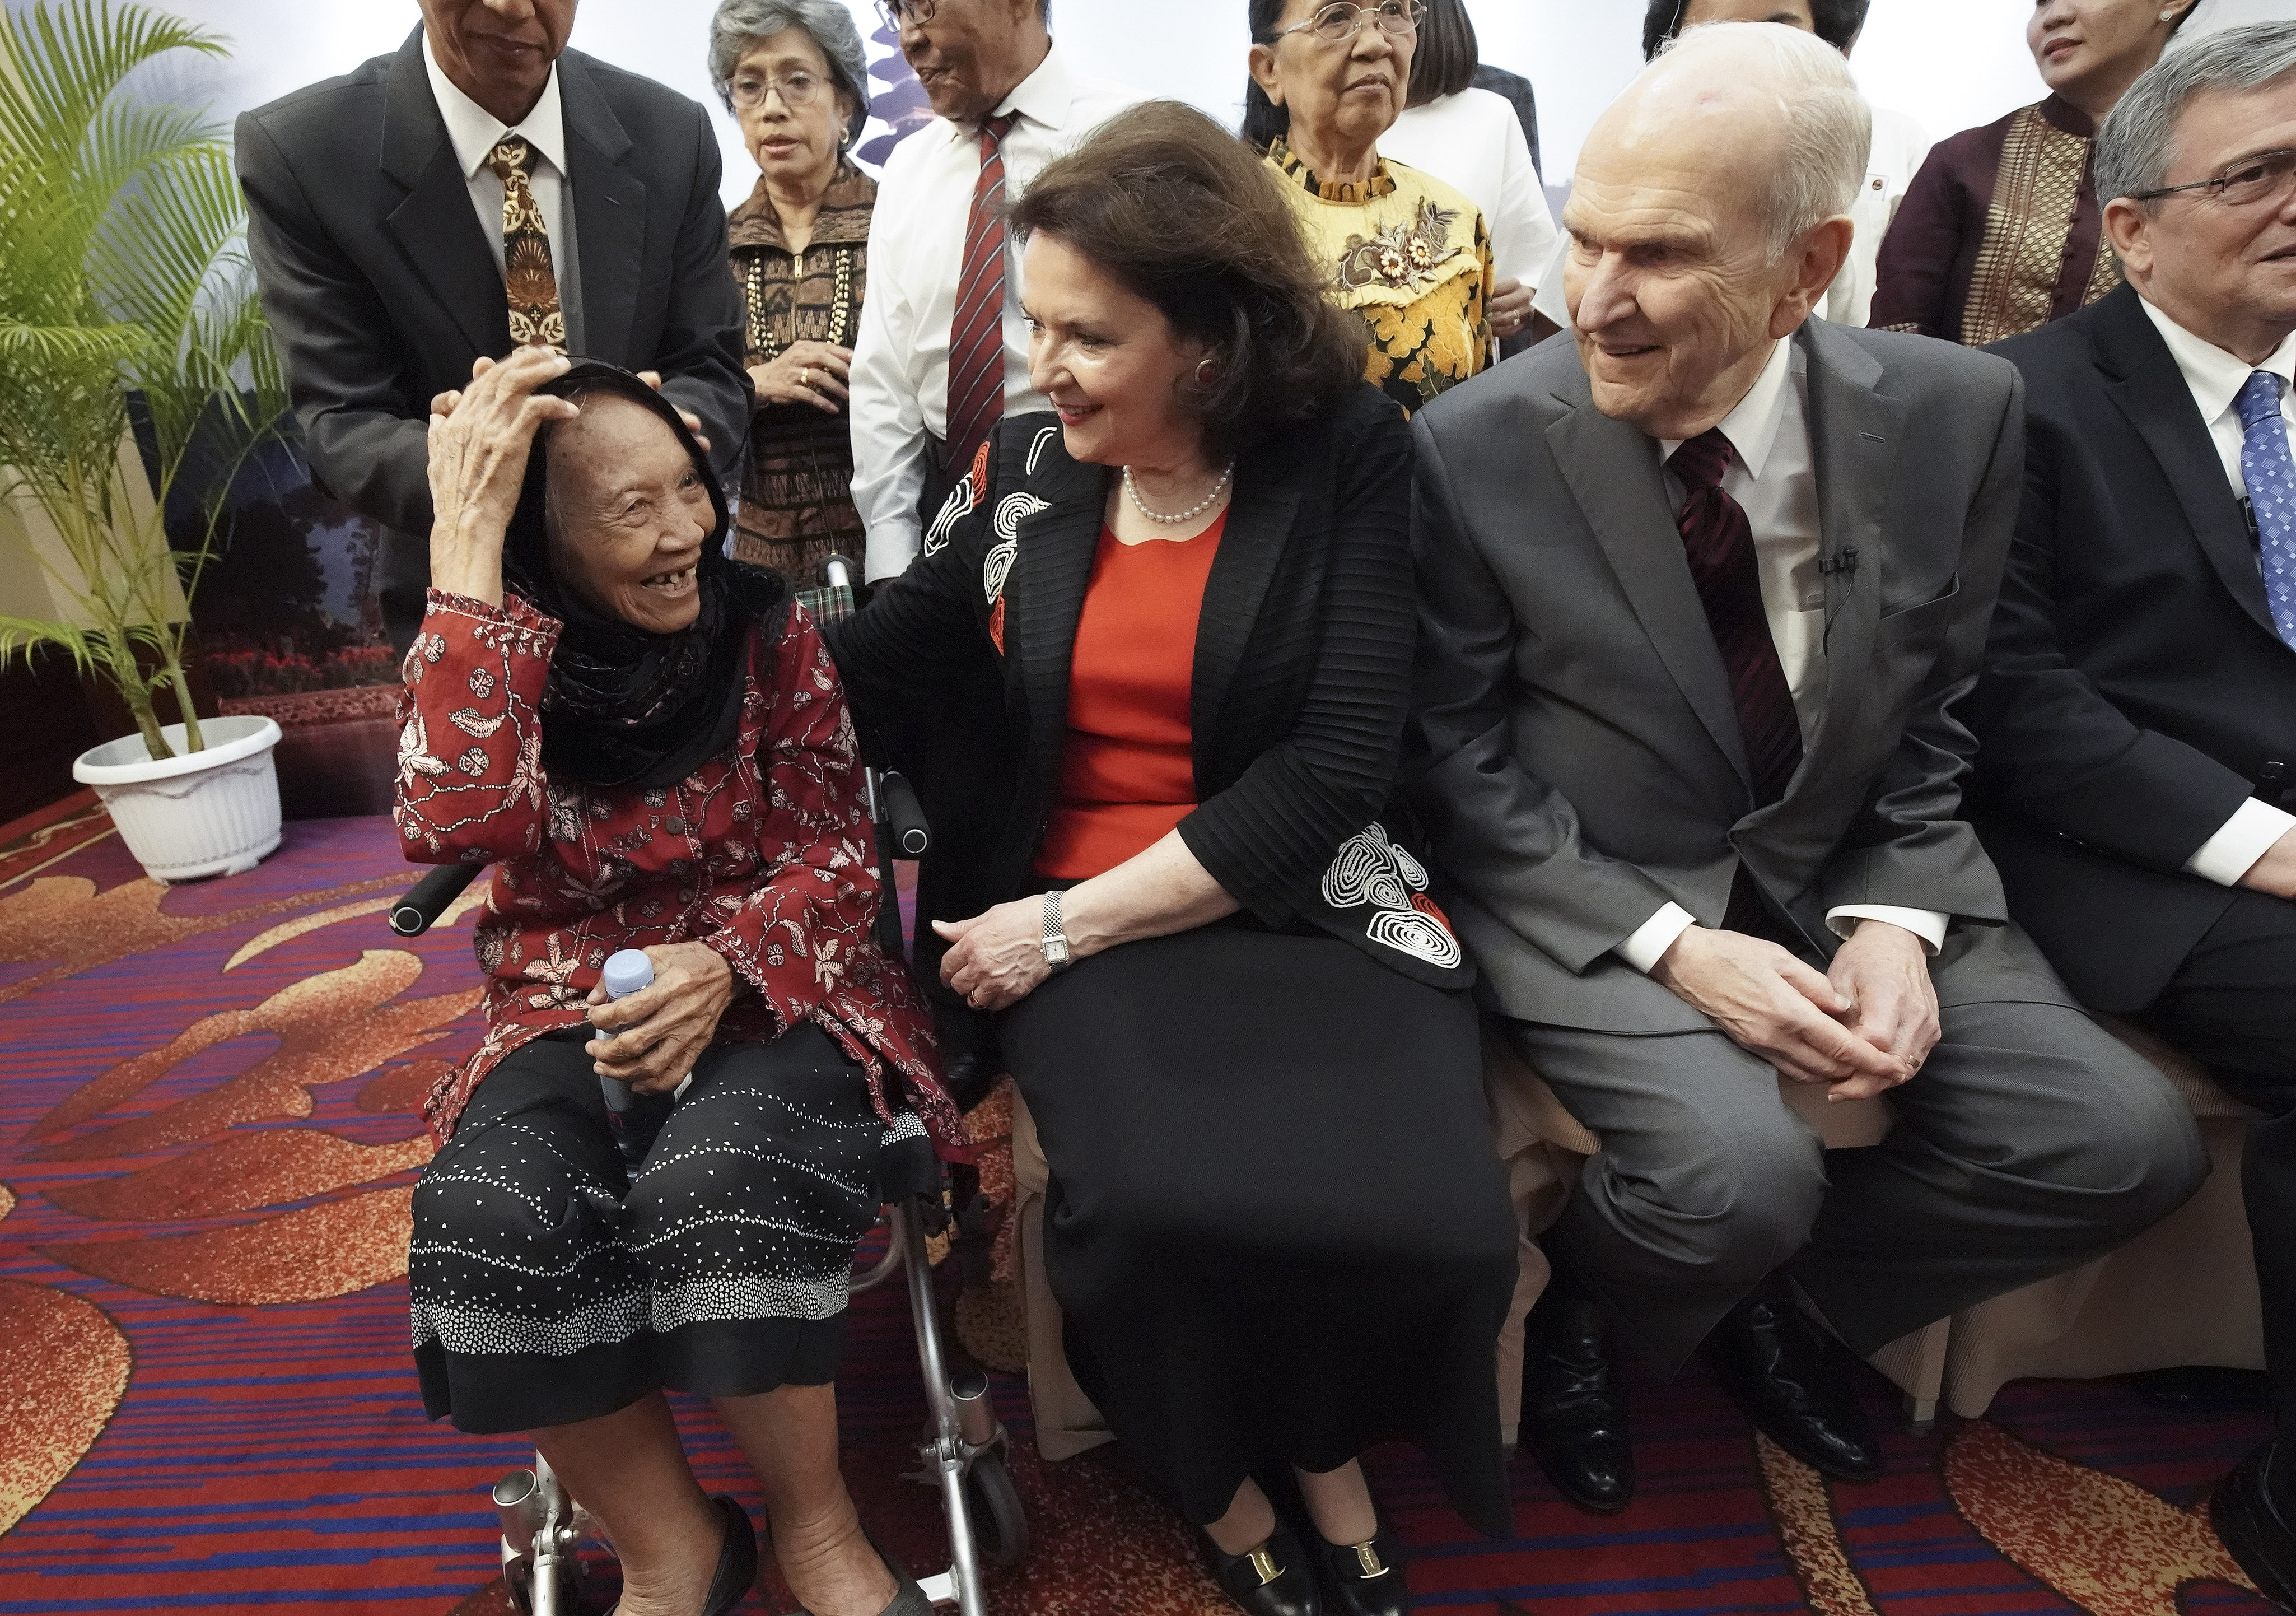 President Russell M. Nelson of The Church of Jesus Christ of Latter-day Saints and his wife, Sister Wendy Nelson, talk with 86-year-old Tumini as he meets with multigenerational families in Jakarta, Indonesia, on Nov. 21, 2019.